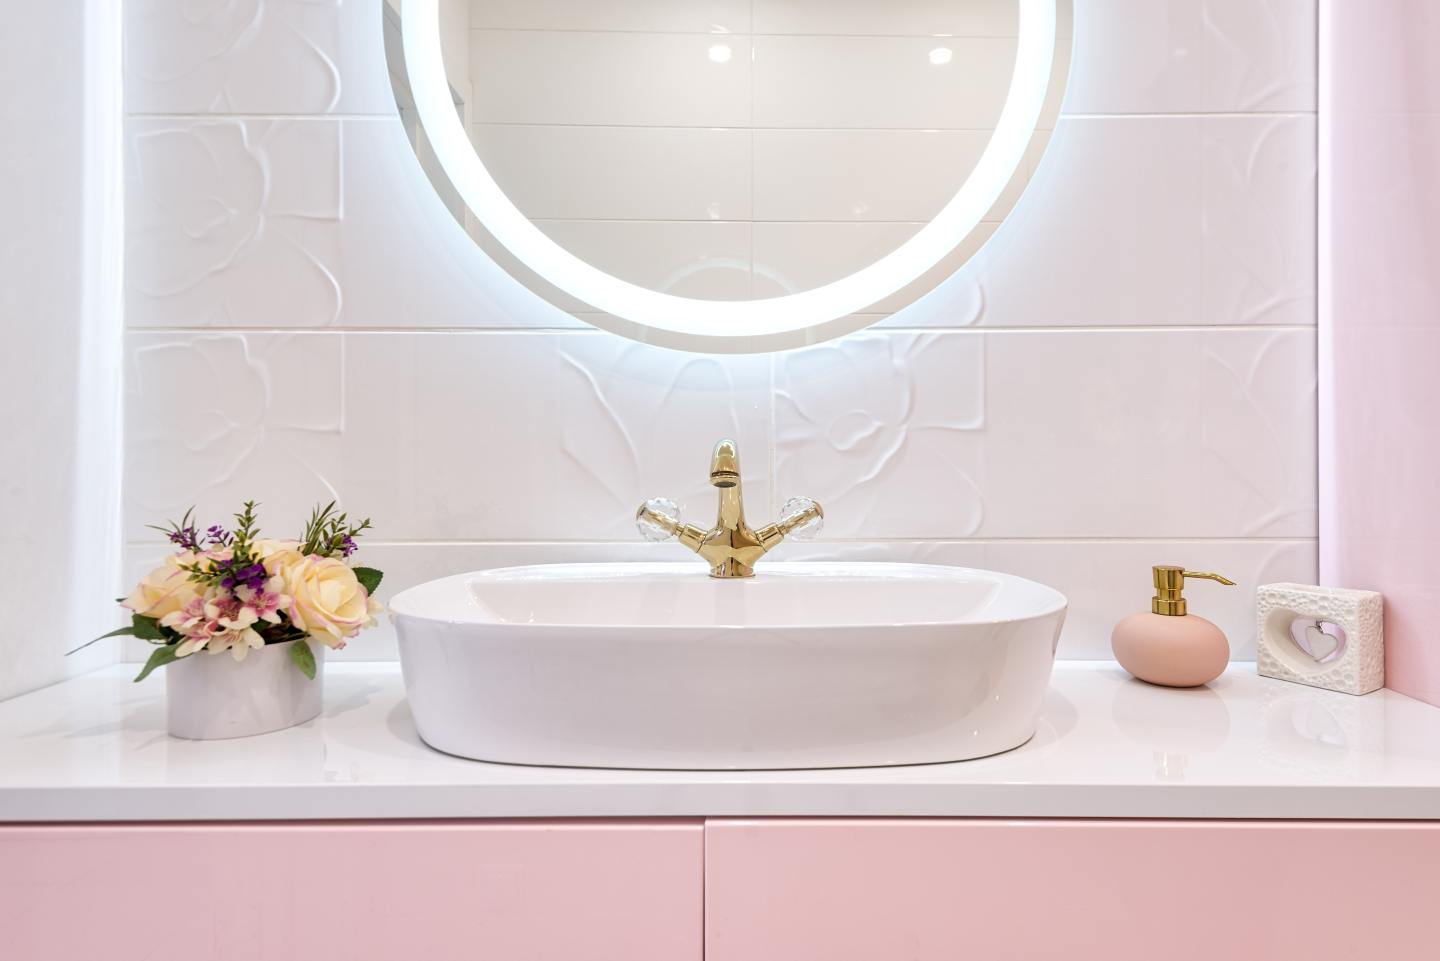 4 Simple Hacks To Transform Your Bathroom On A Budget